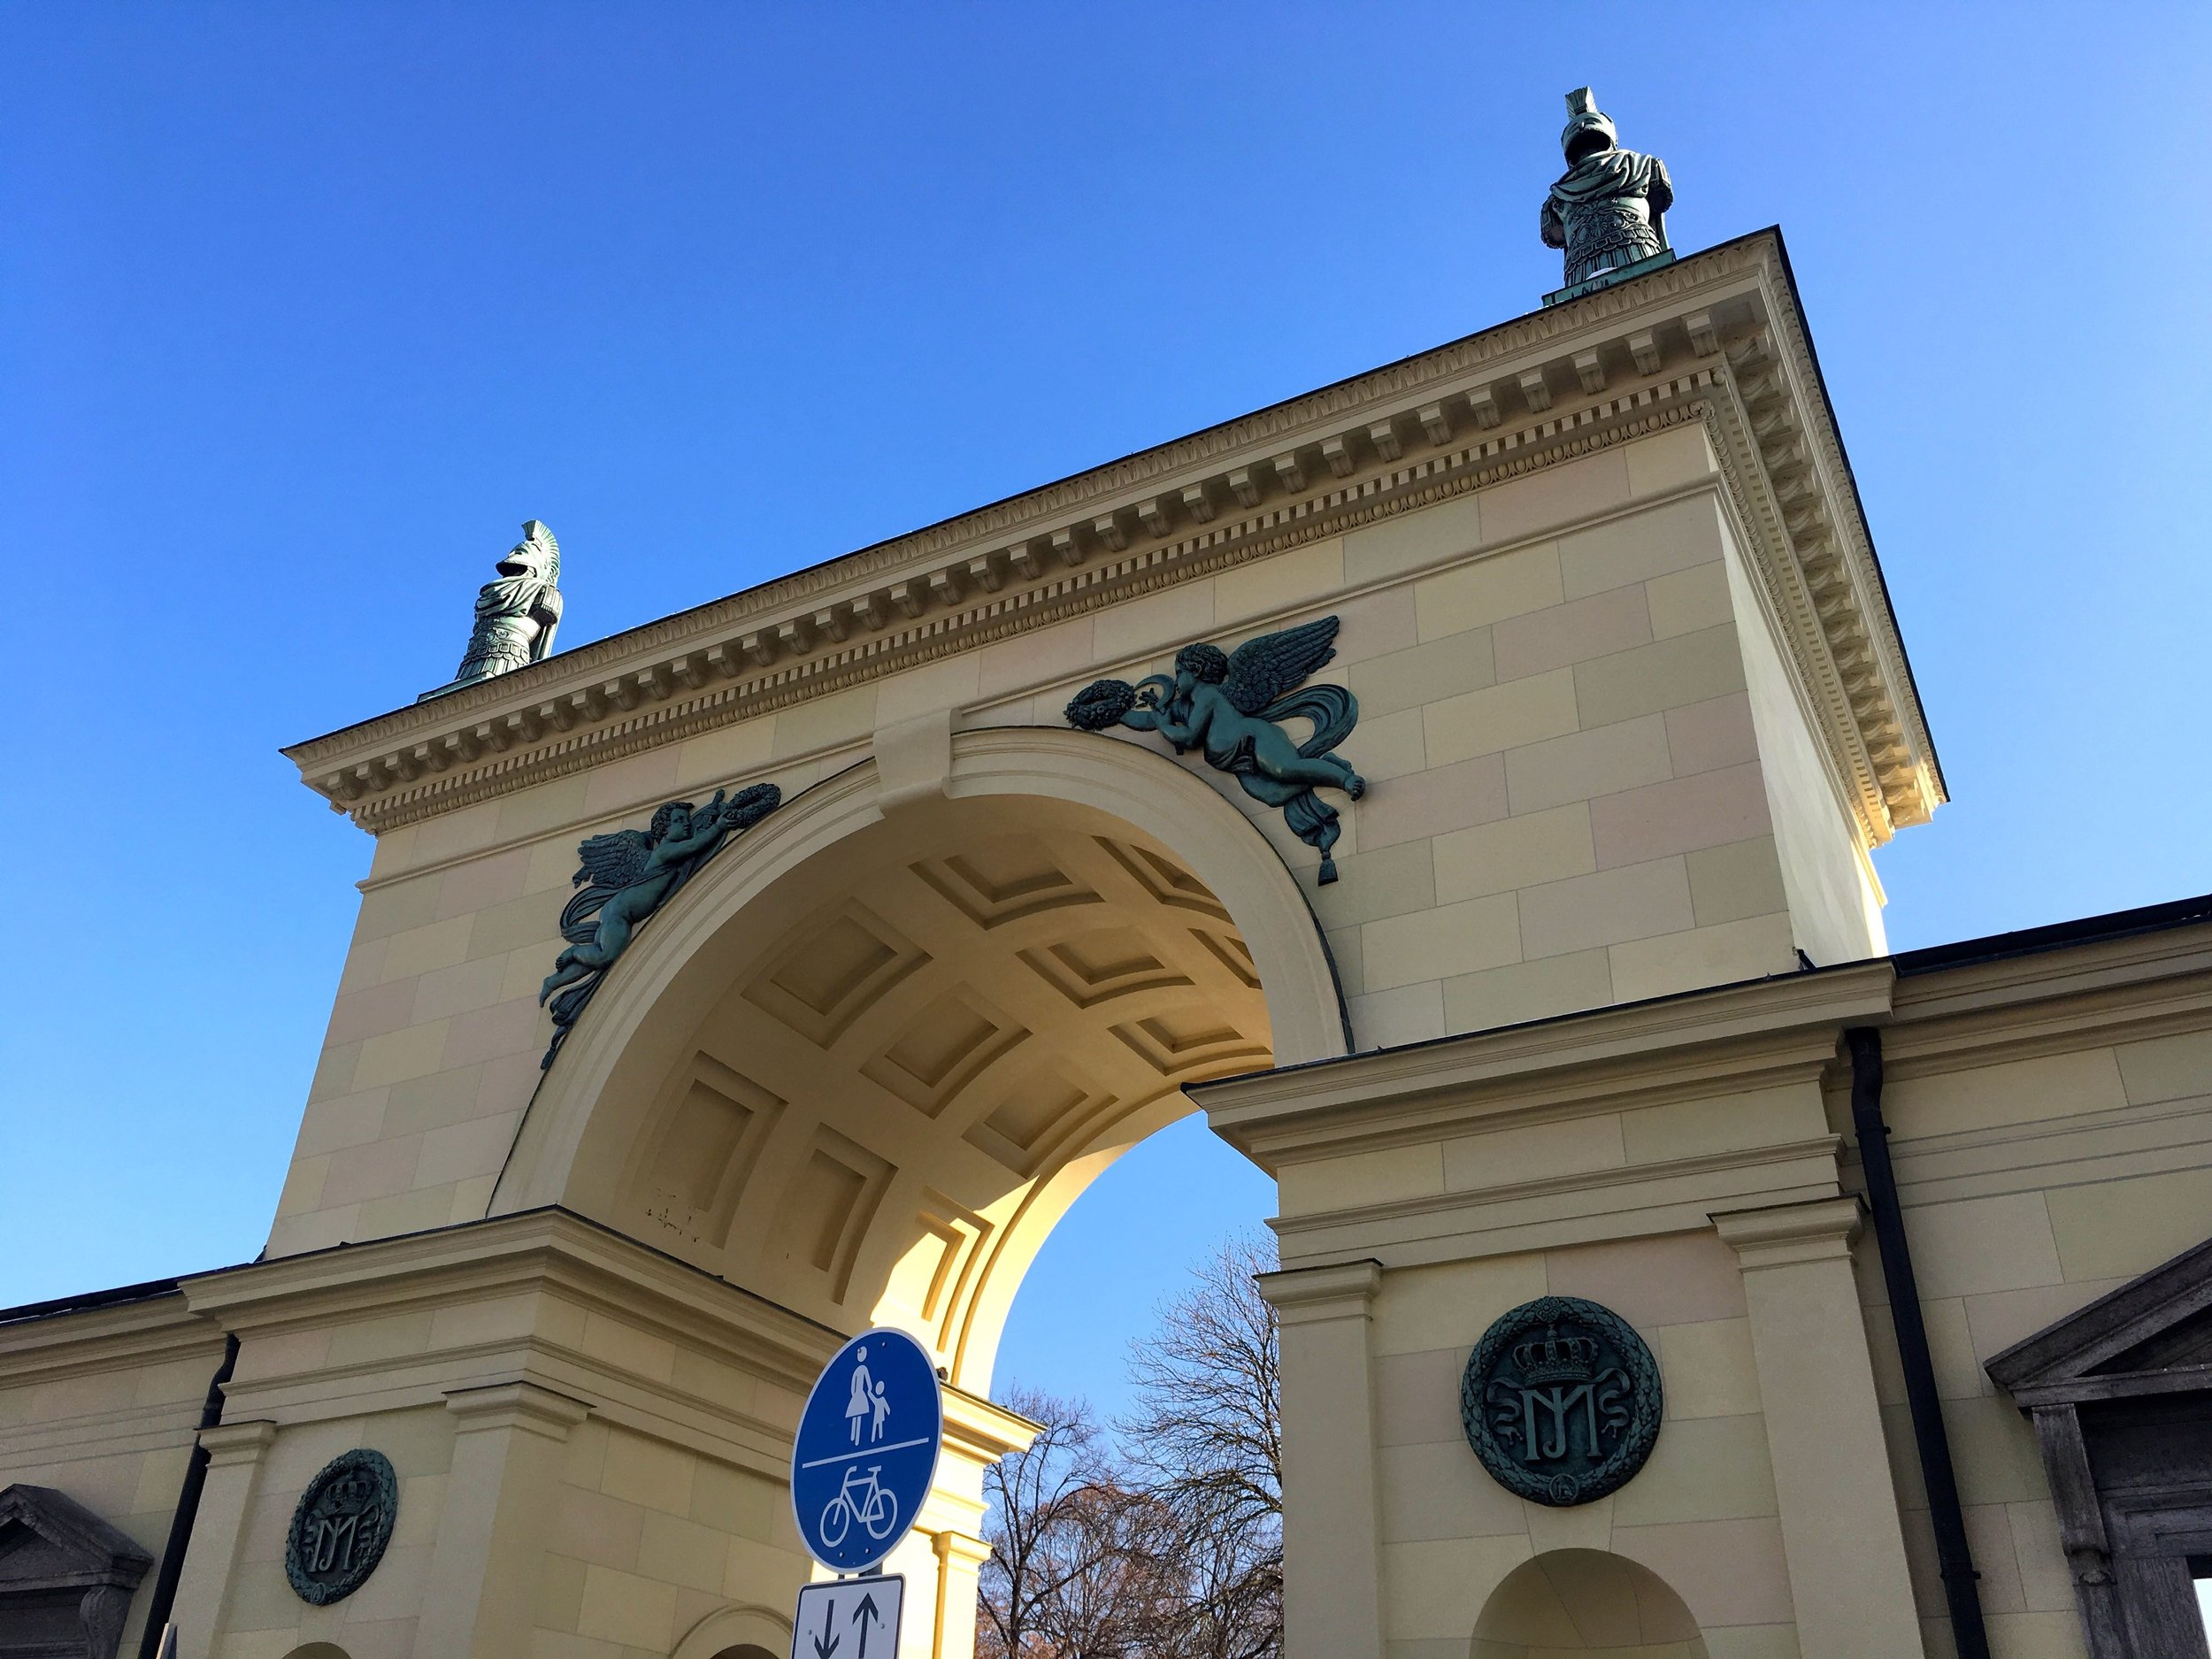 Heading through the arch into Munich's Hofgarten